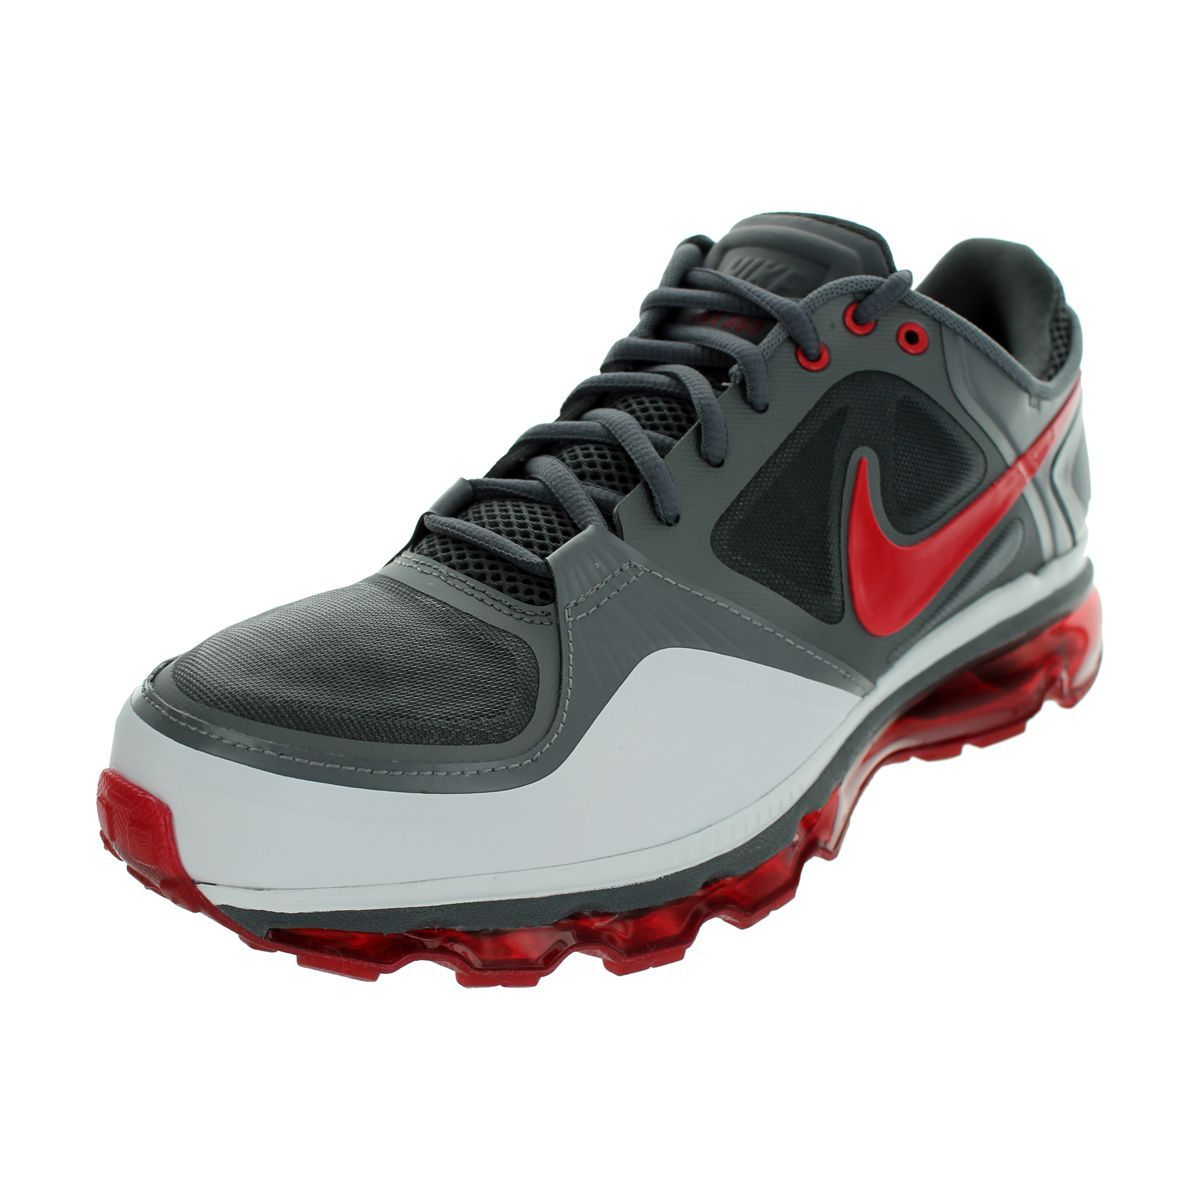 cheap for discount 6efaa 33096 Nike Trainer 1.3 Max+ Running Shoes (Dark Grey Varsity Red White Cool Grey)  (8), Green